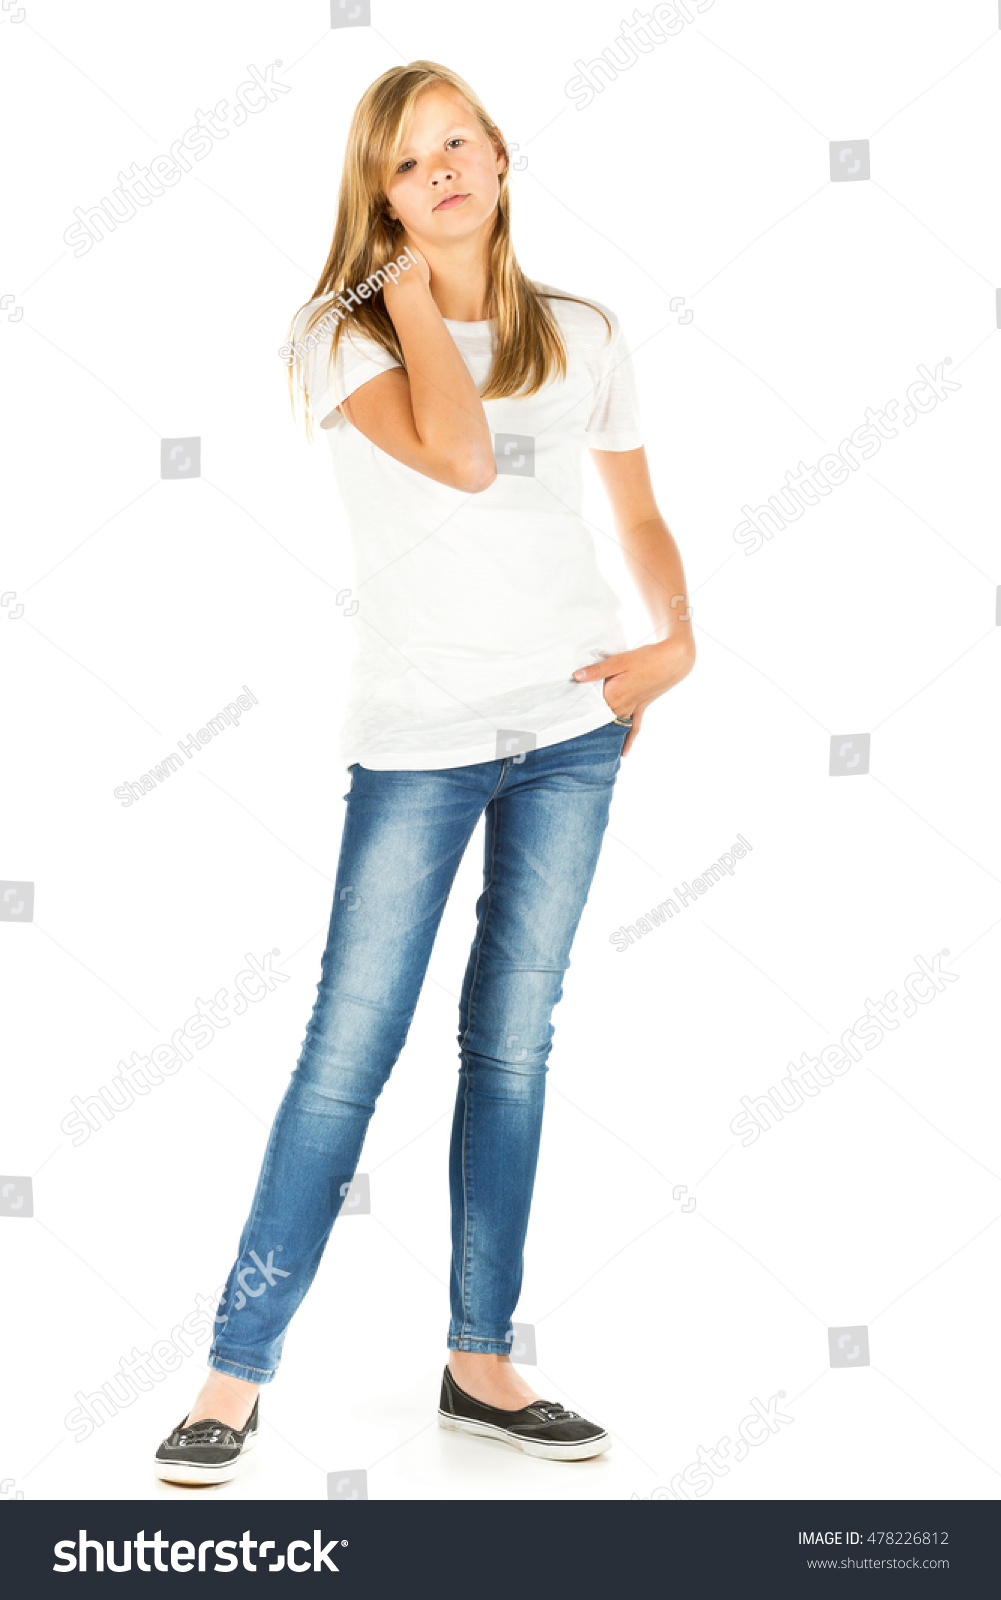 White t shirt blue jeans - Young Girl Standing With White T Shirt And Blue Jeans Over White Background